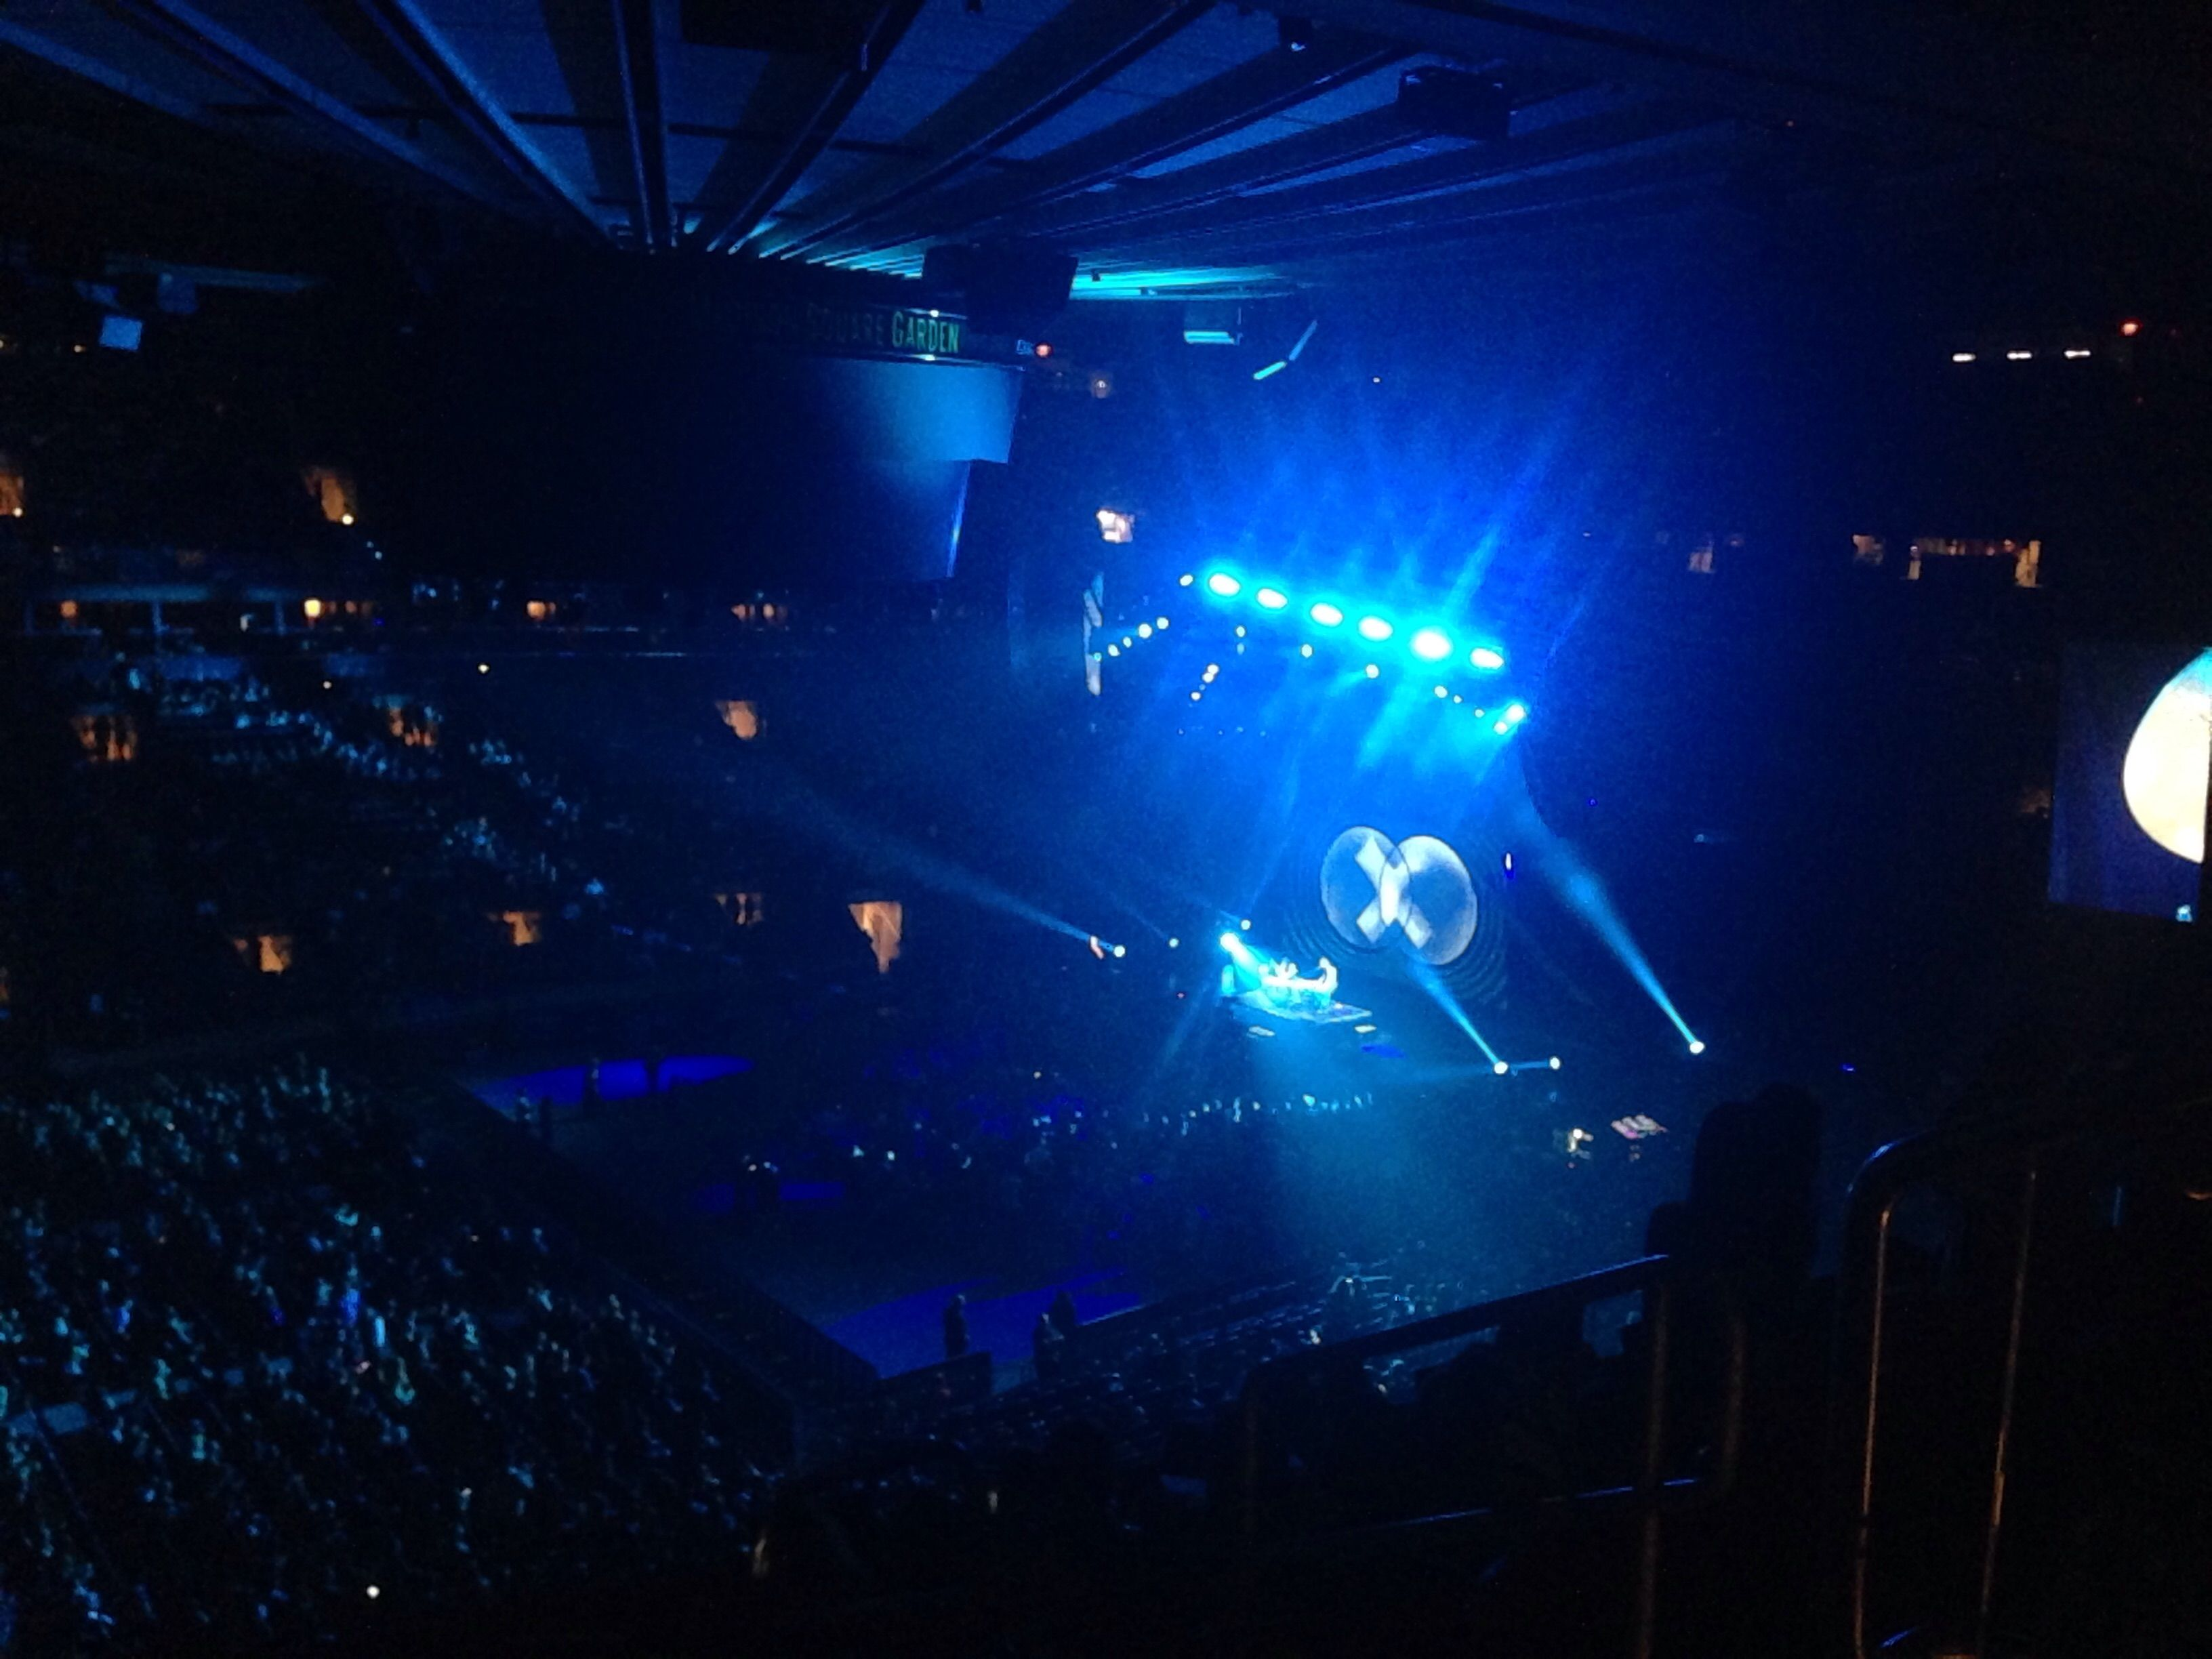 Madison Square Garden : Row 9